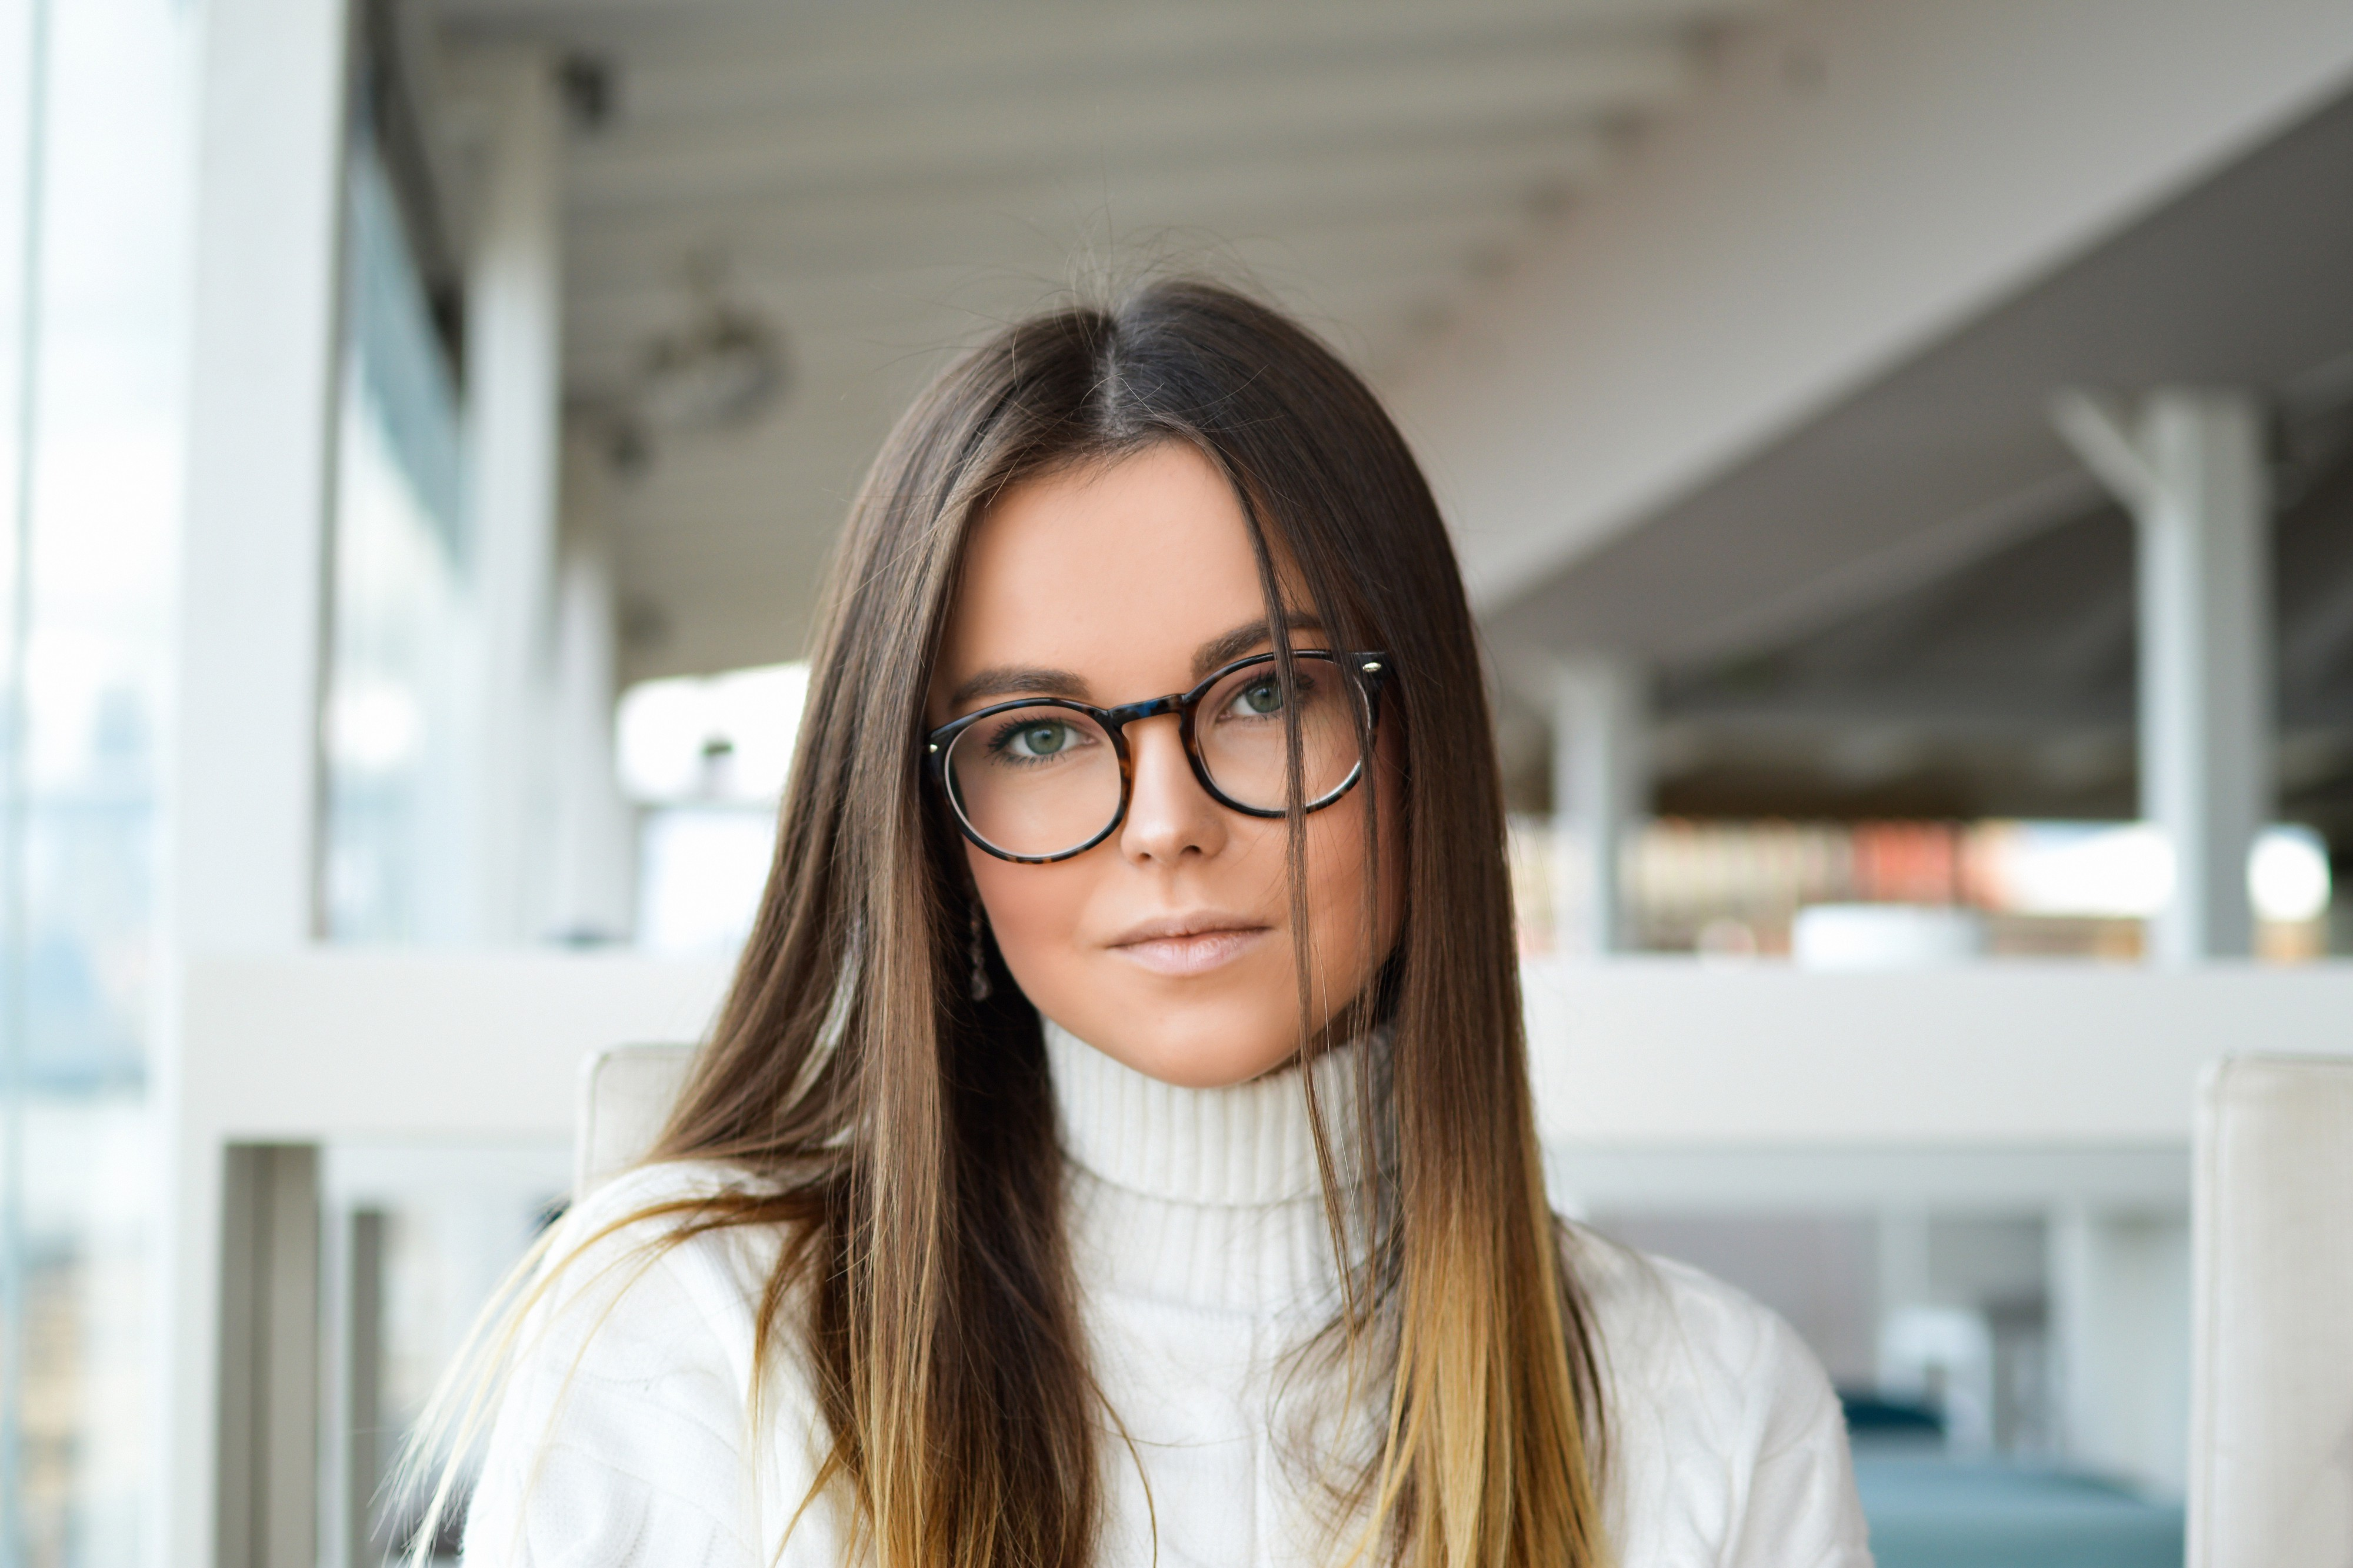 A woman with long, brown hair and round glasses looks into the camera. She is wearing a white, turtle neck sweater.